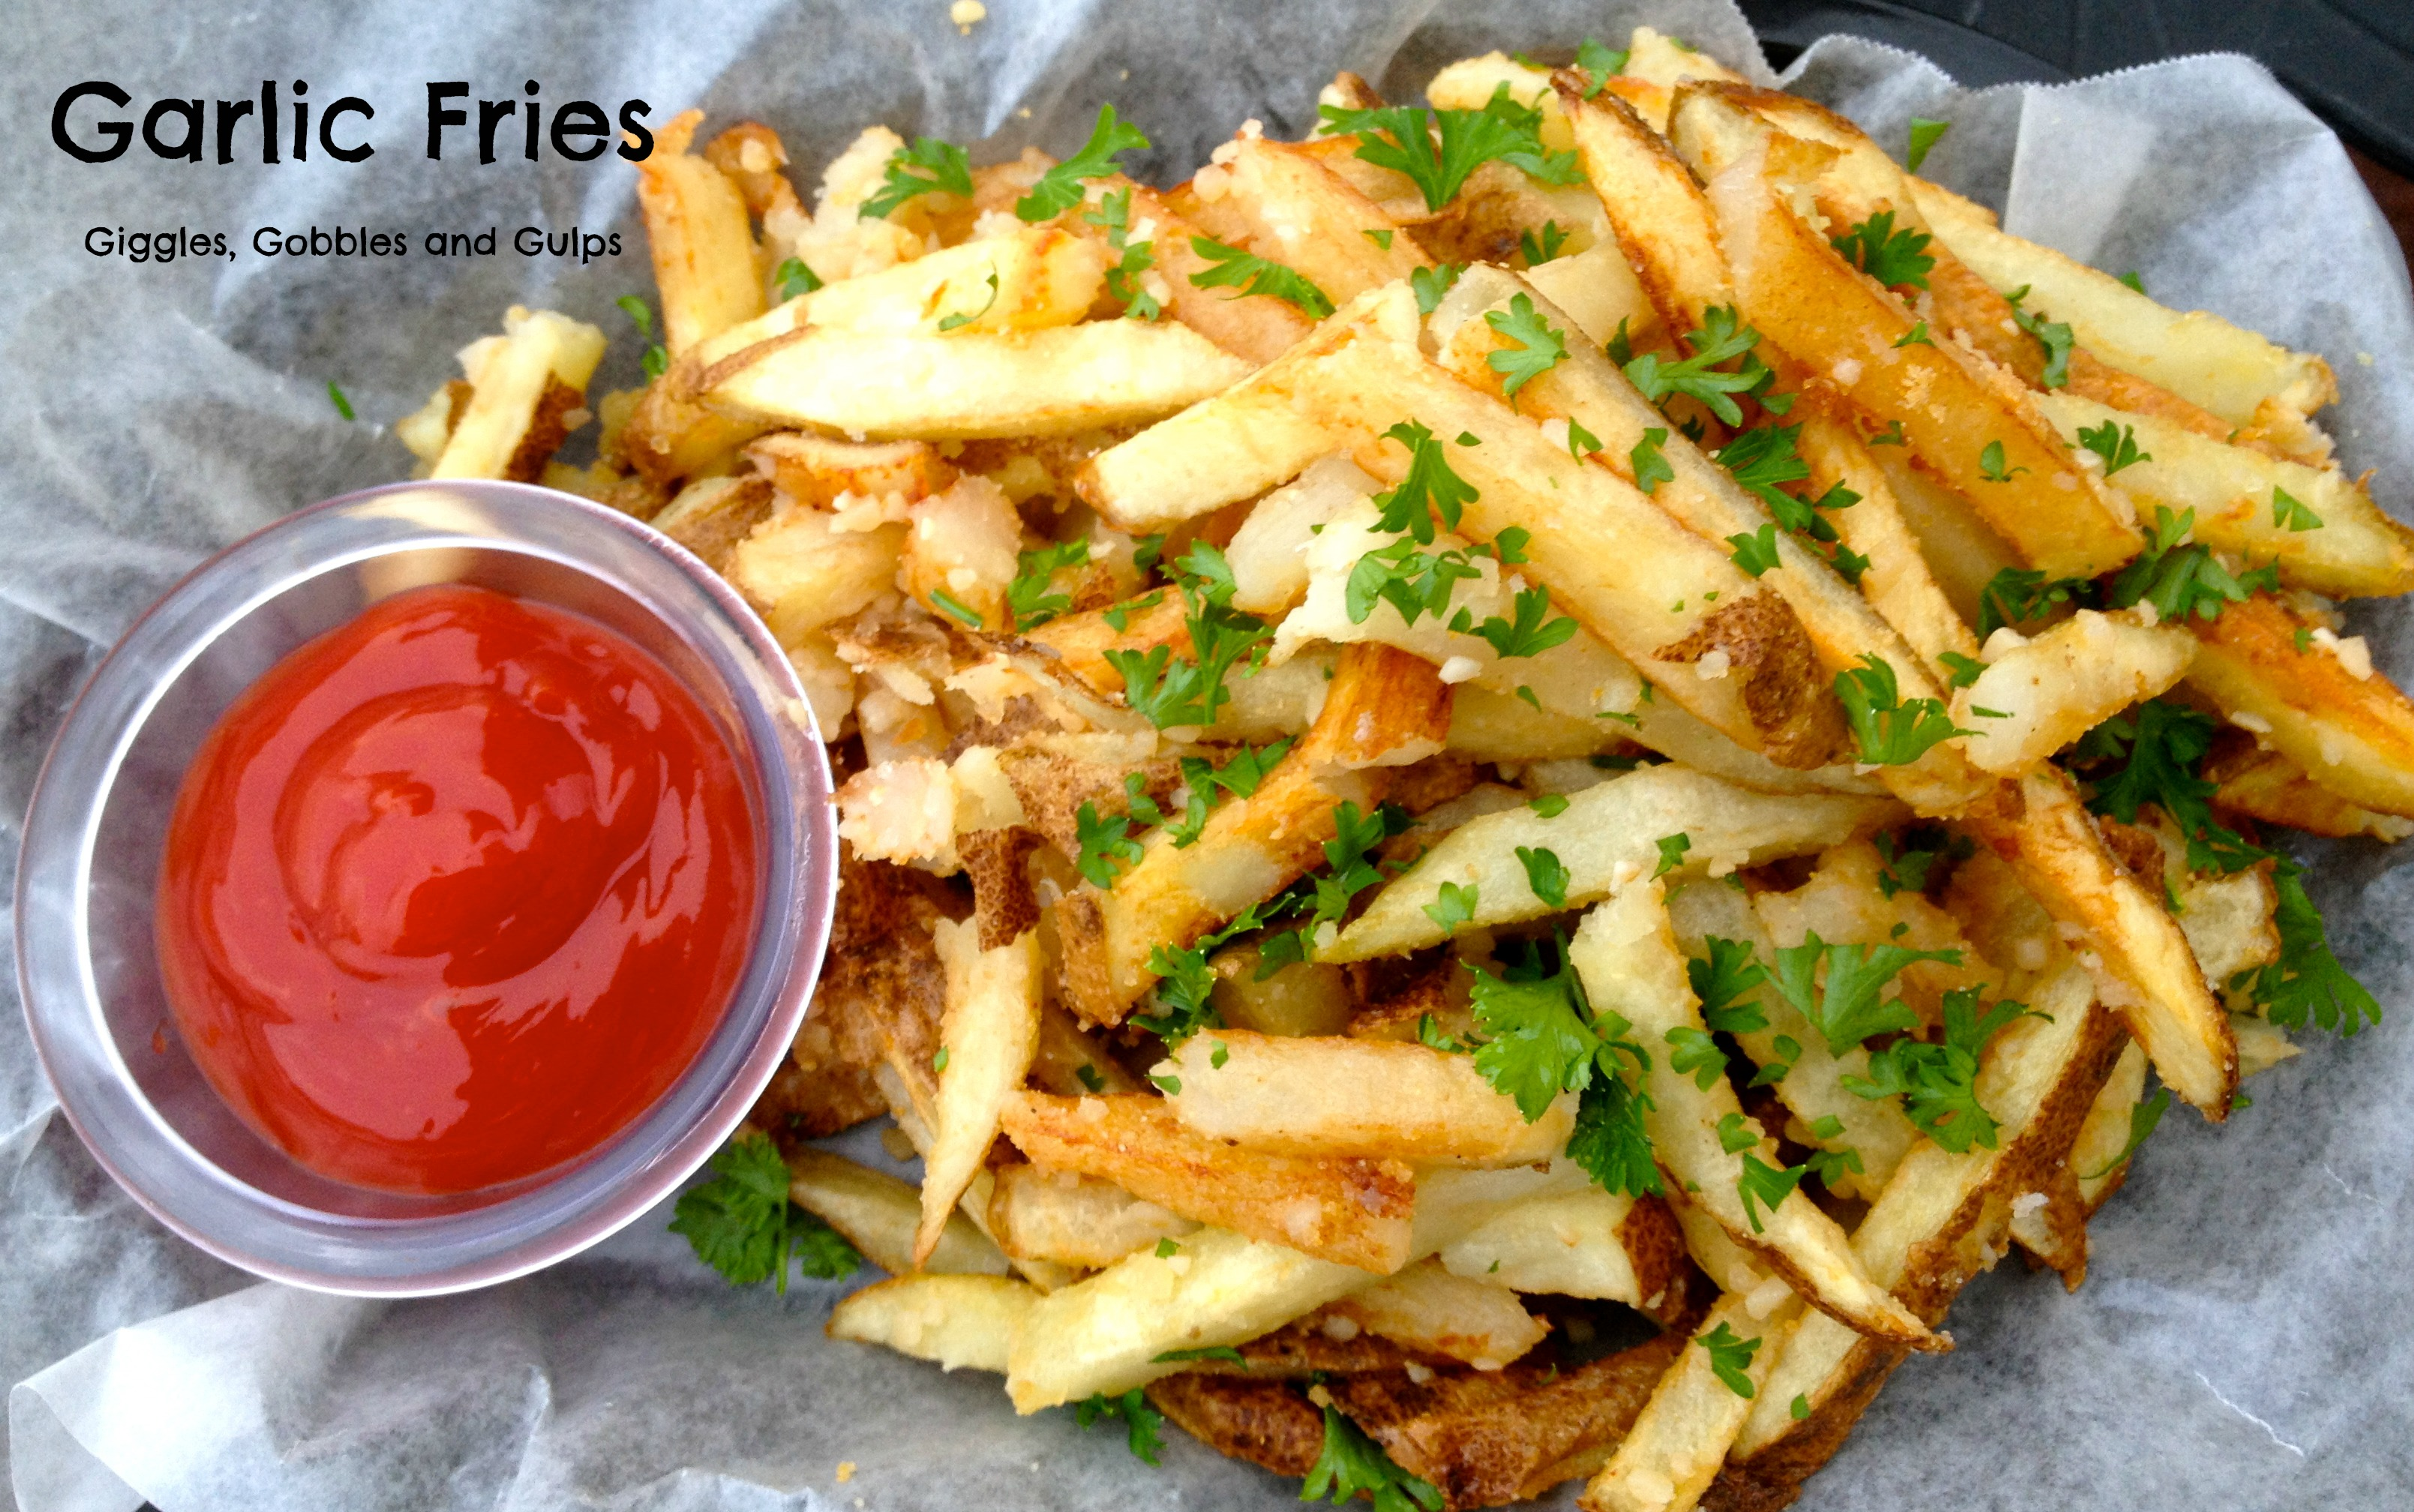 Garlic Fries - Giggles, Gobbles and Gulps